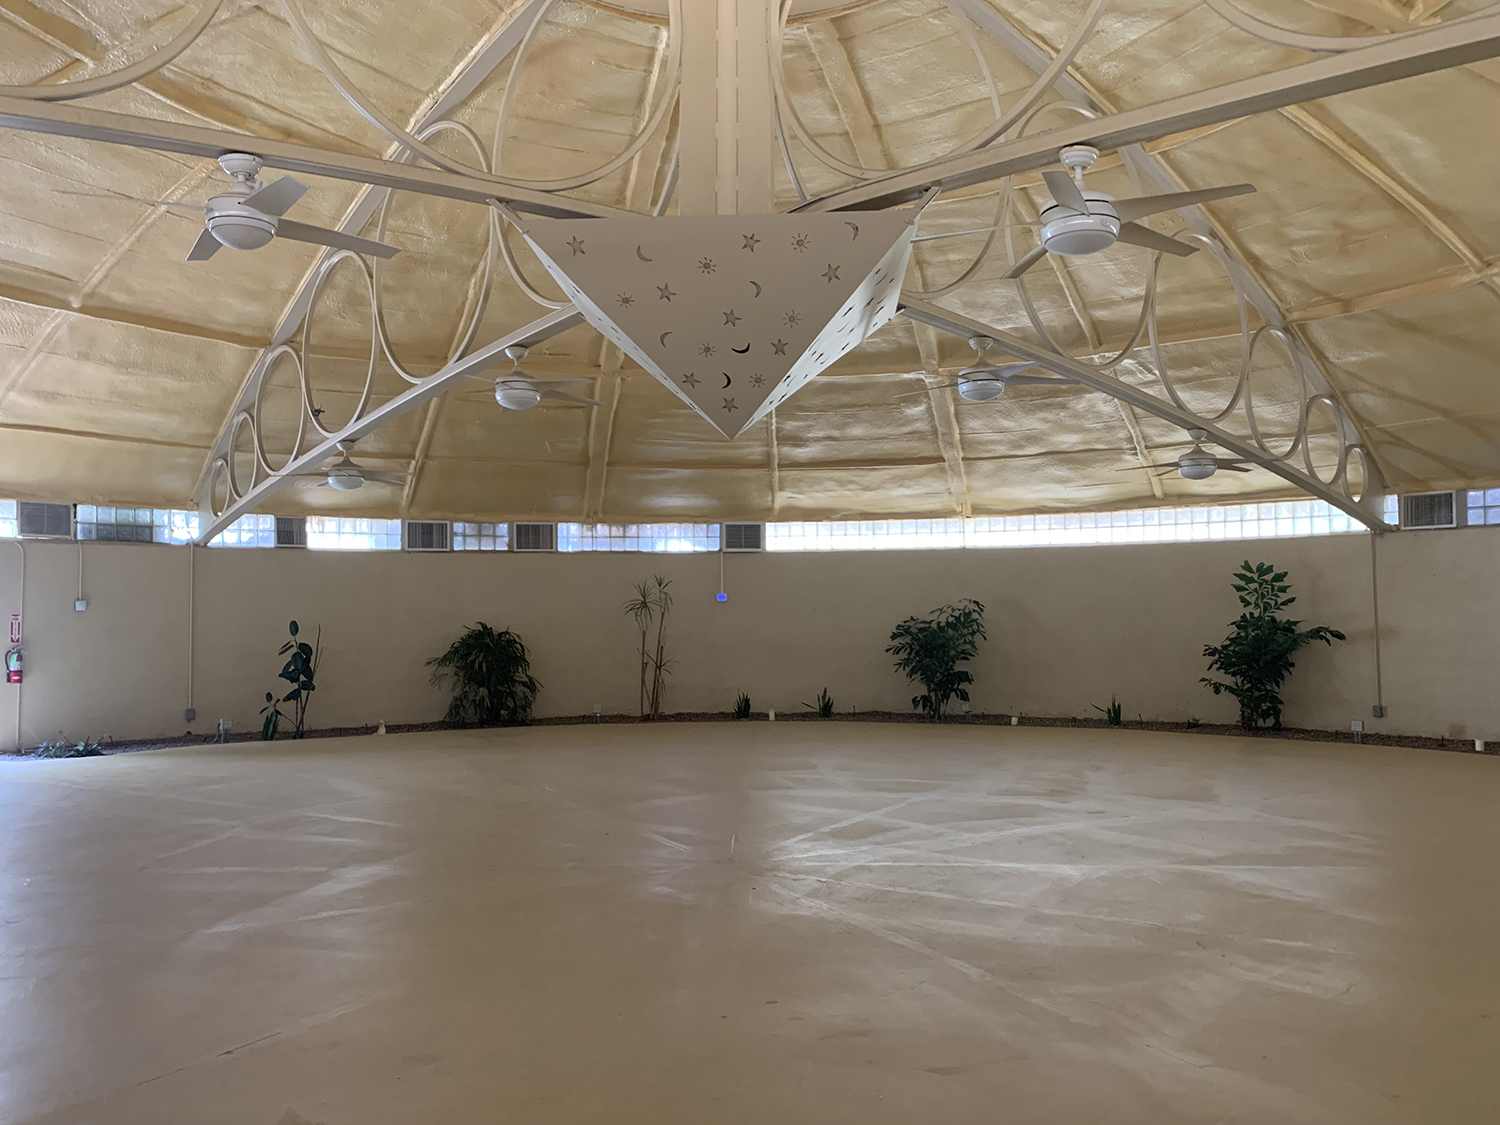 The sprawling space inside the yoga dome.